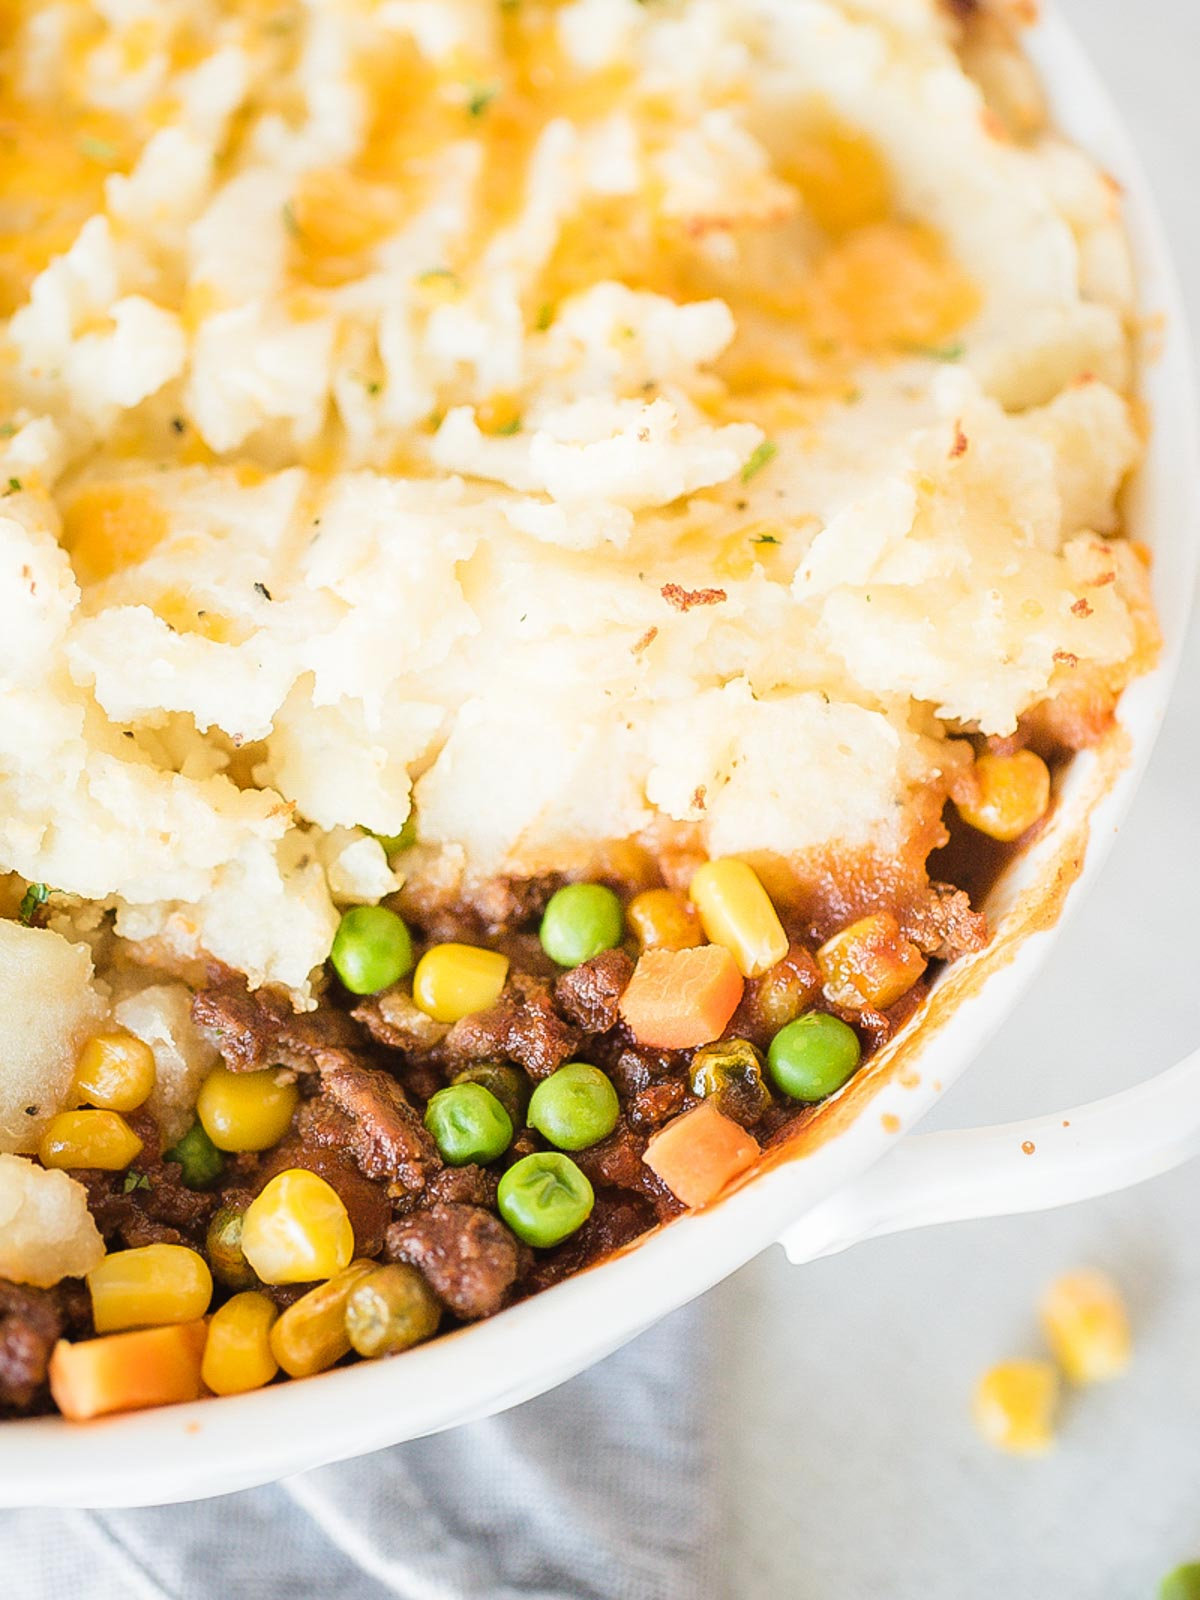 up close of inside of shepherds pie in a white baking dish